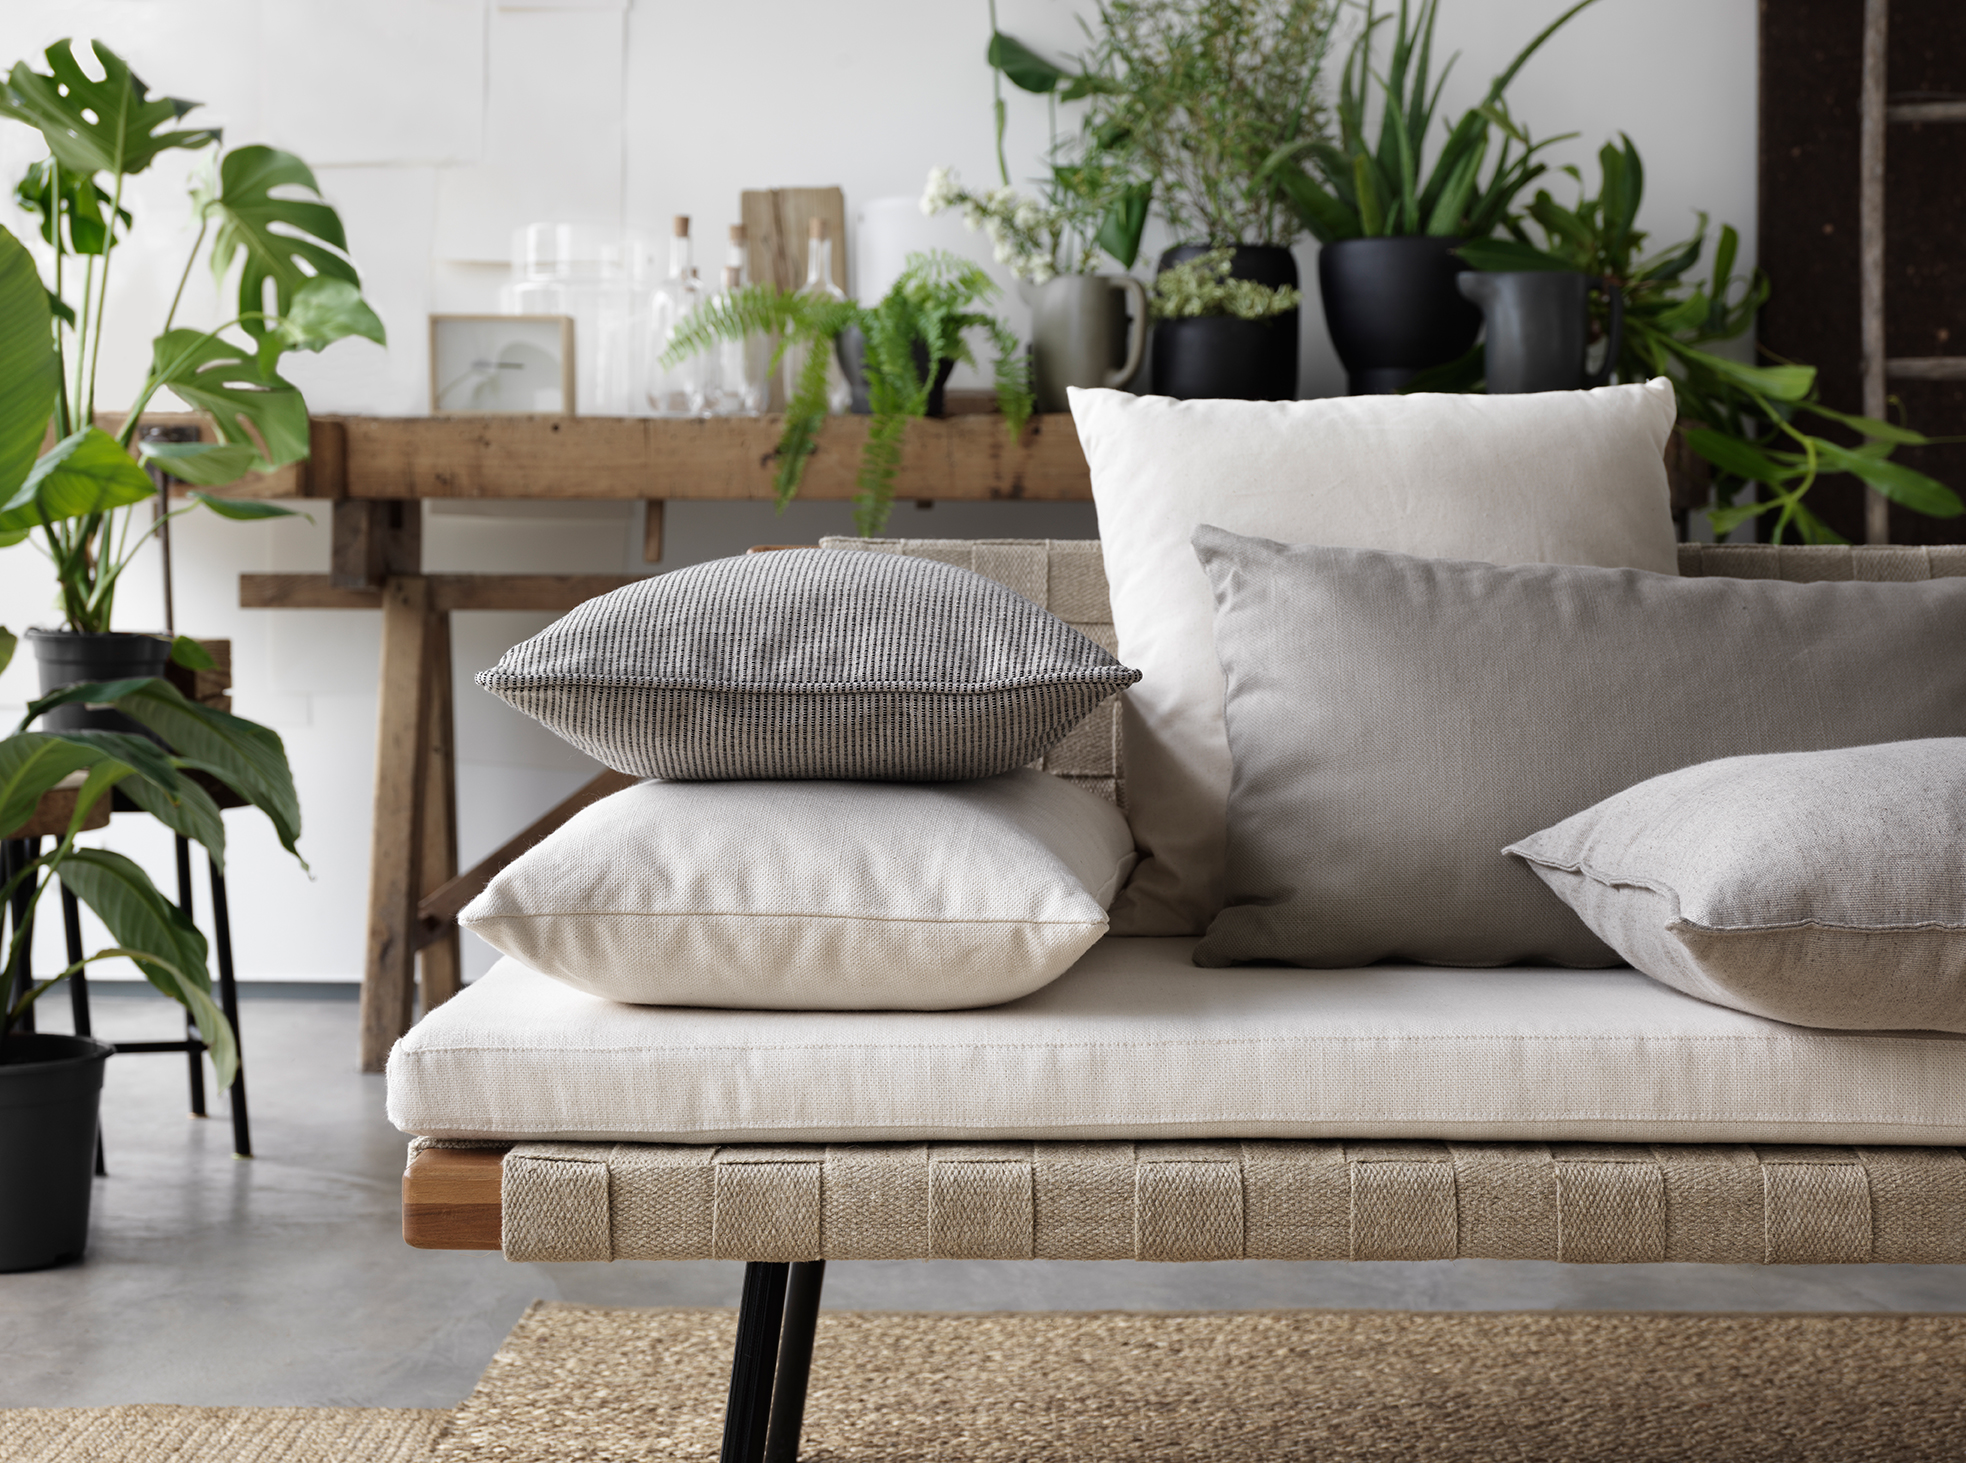 Sinnerlig Ikea Ikea S Sinnerlig Collection By Ilse Crawford Cate St Hill